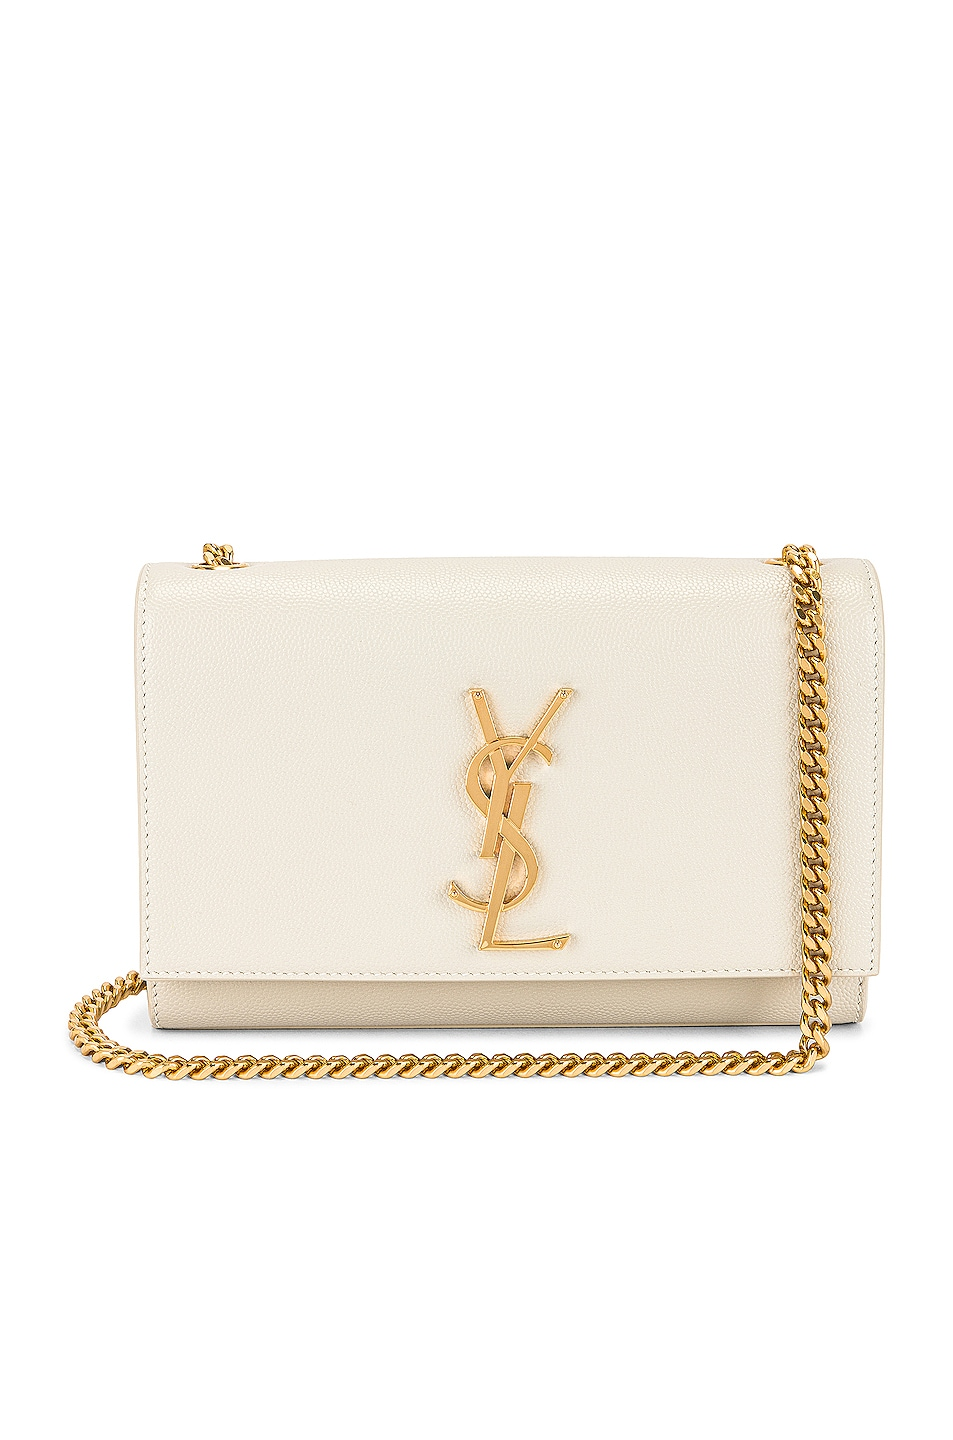 Image 1 of Saint Laurent Kate Crossbody Bag in Crema Soft